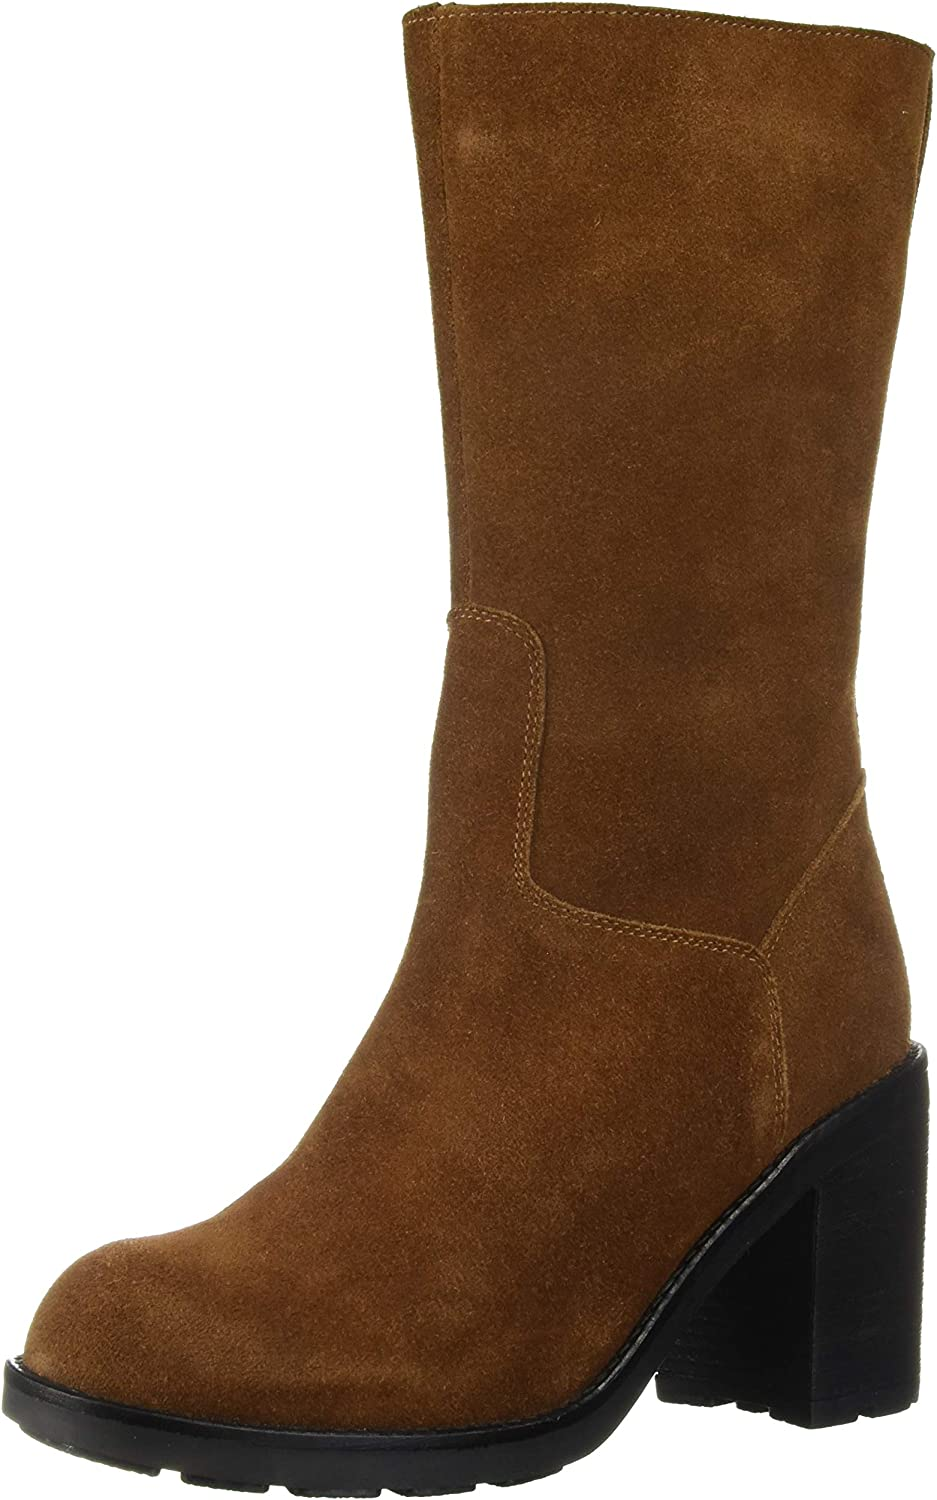 LFL by Lust for Life Women's L-Magnum Mid Calf Boot, tan Suede, 11 M US